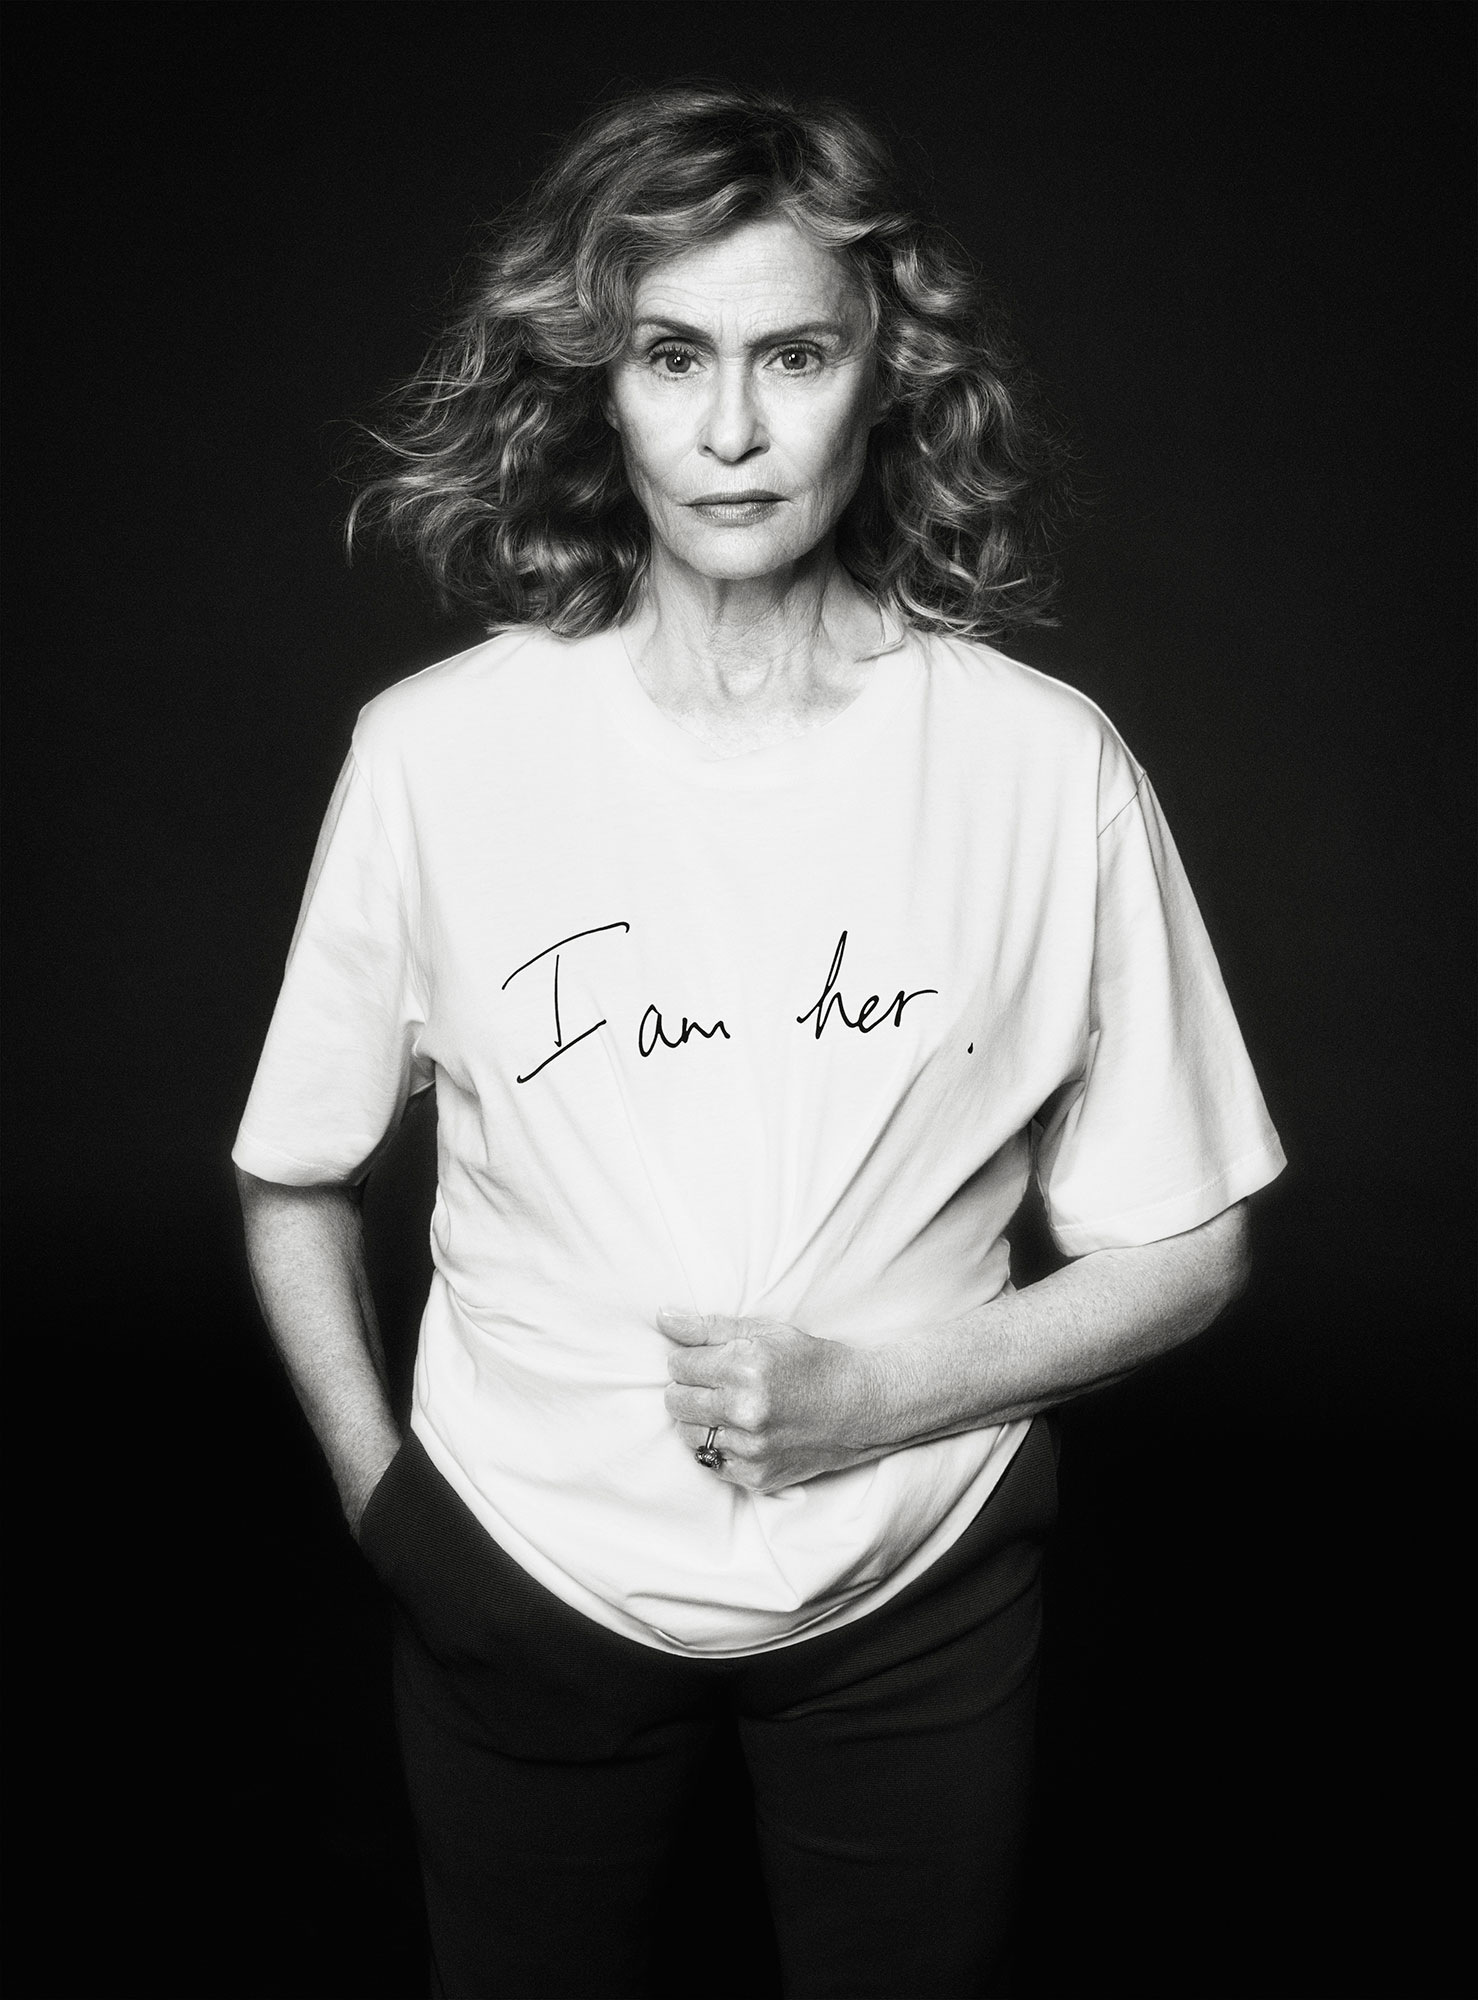 Lauren Hutton Net-a-Porter Is Here With a Star-Studded T-Shirt Collection for International Women's Day - All hail! The iconic model and actress lent her face to the campaign wearing Victoria Beckham's design.